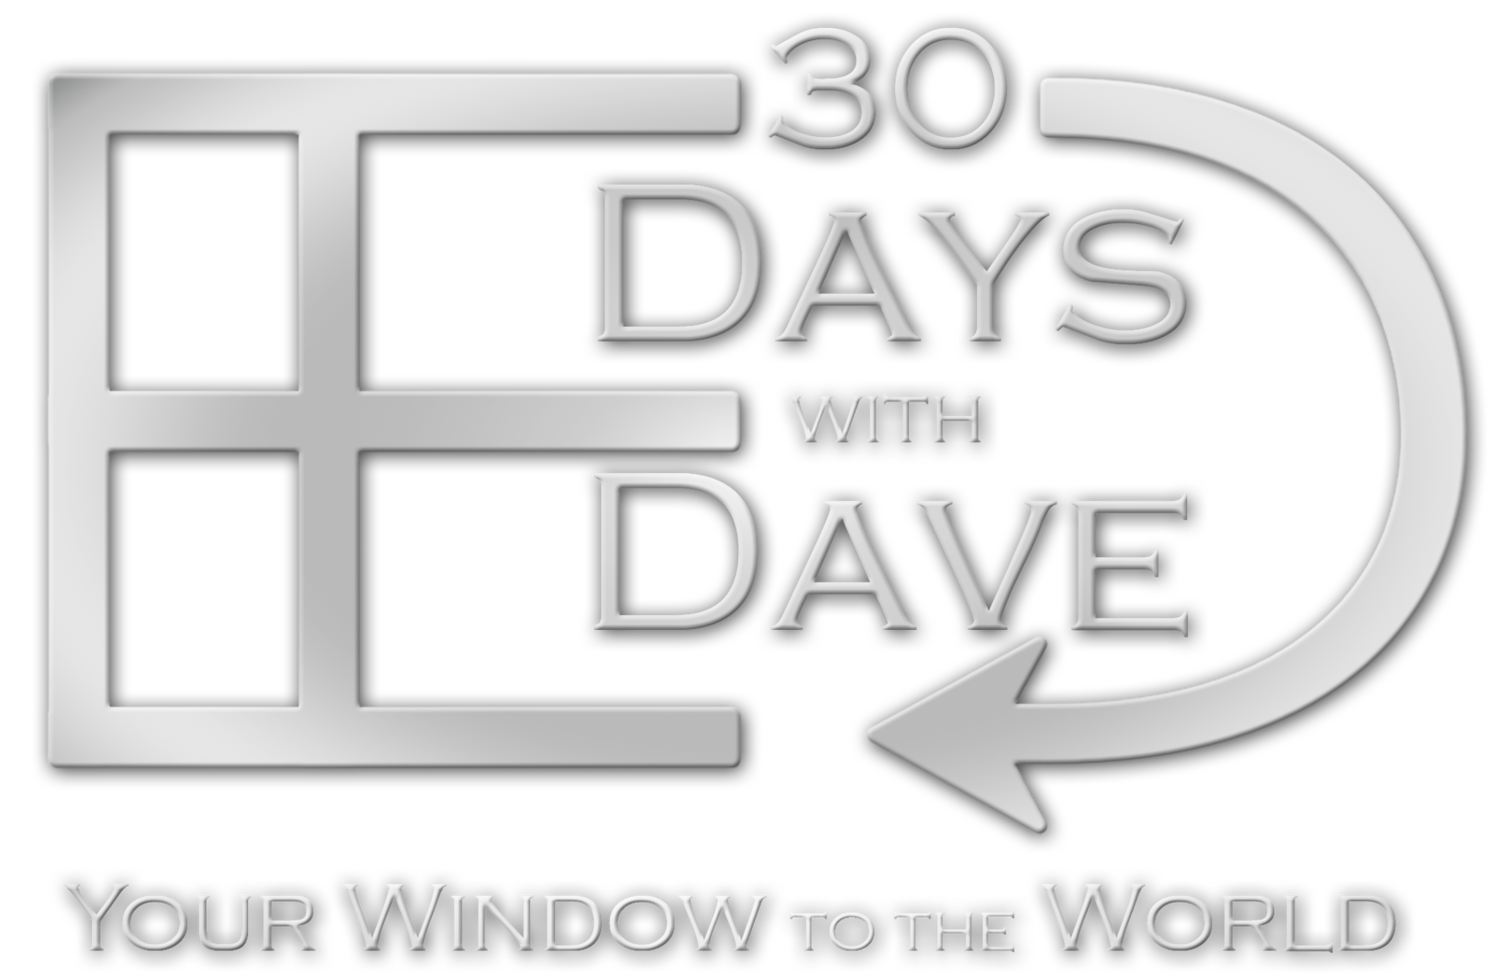 30 Days With Dave